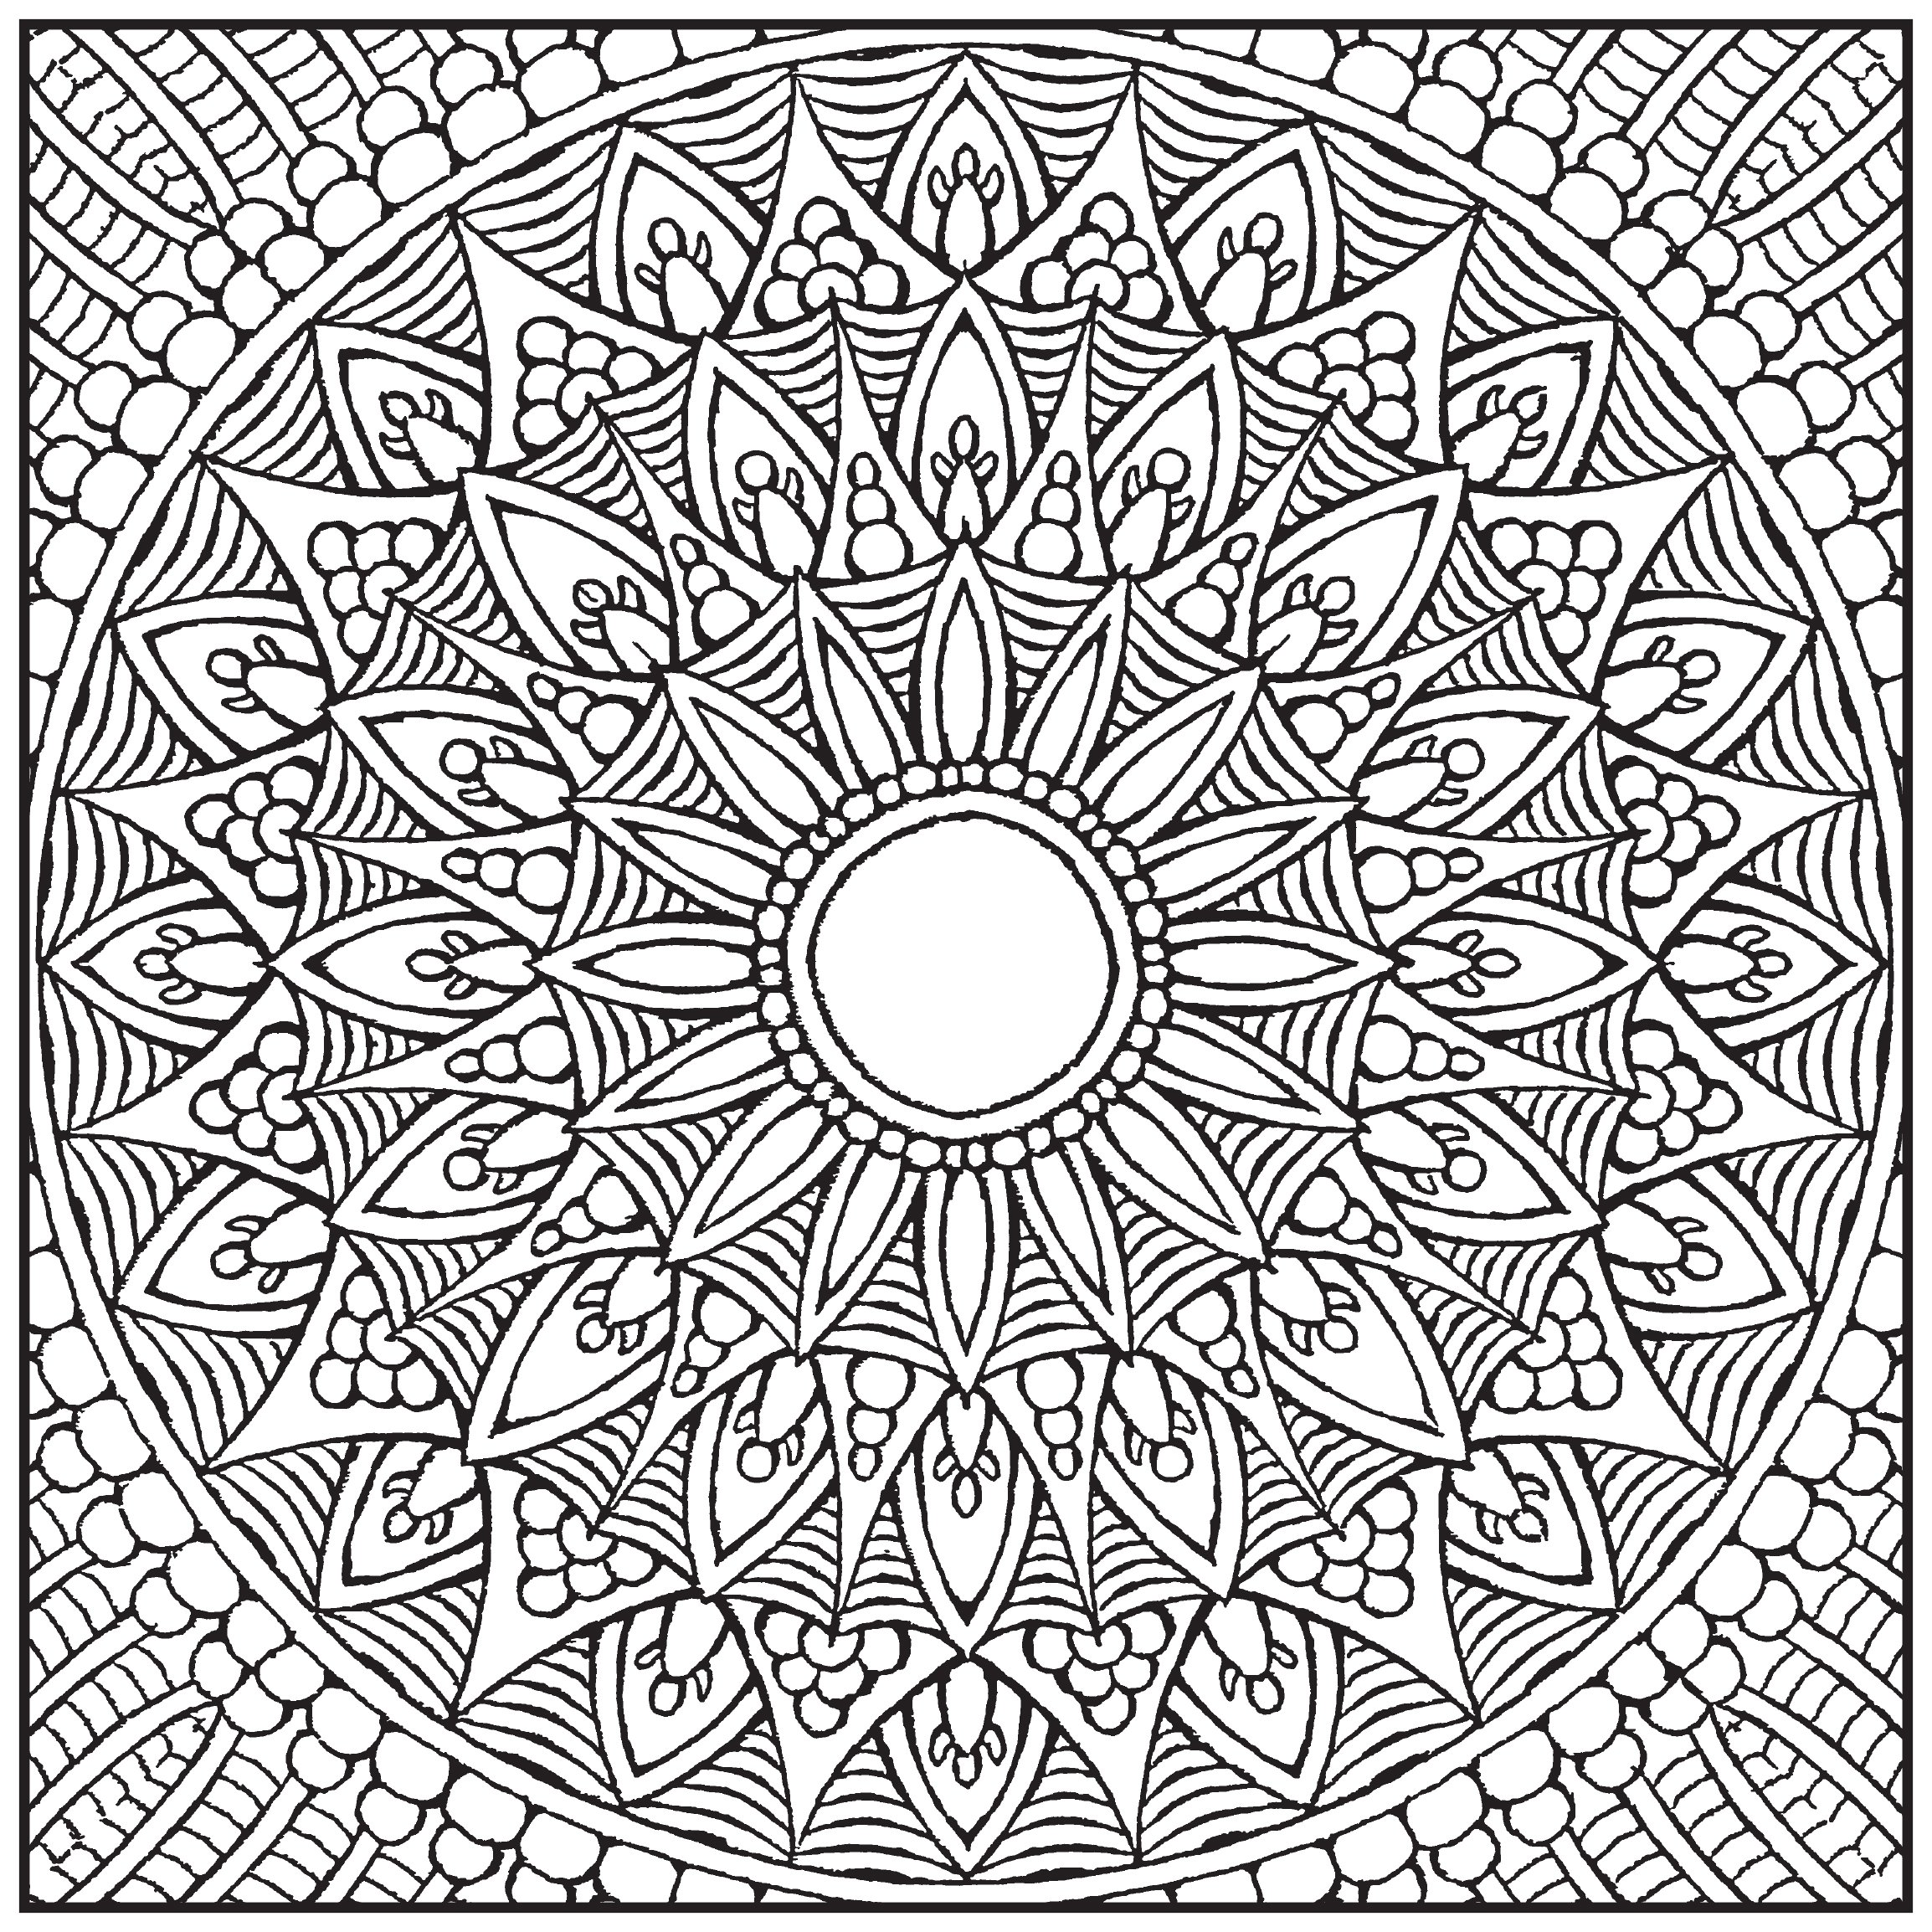 amazoncom mandalas adult coloring book with bonus relaxation music cd included color with music 9781988137032 newbourne media books